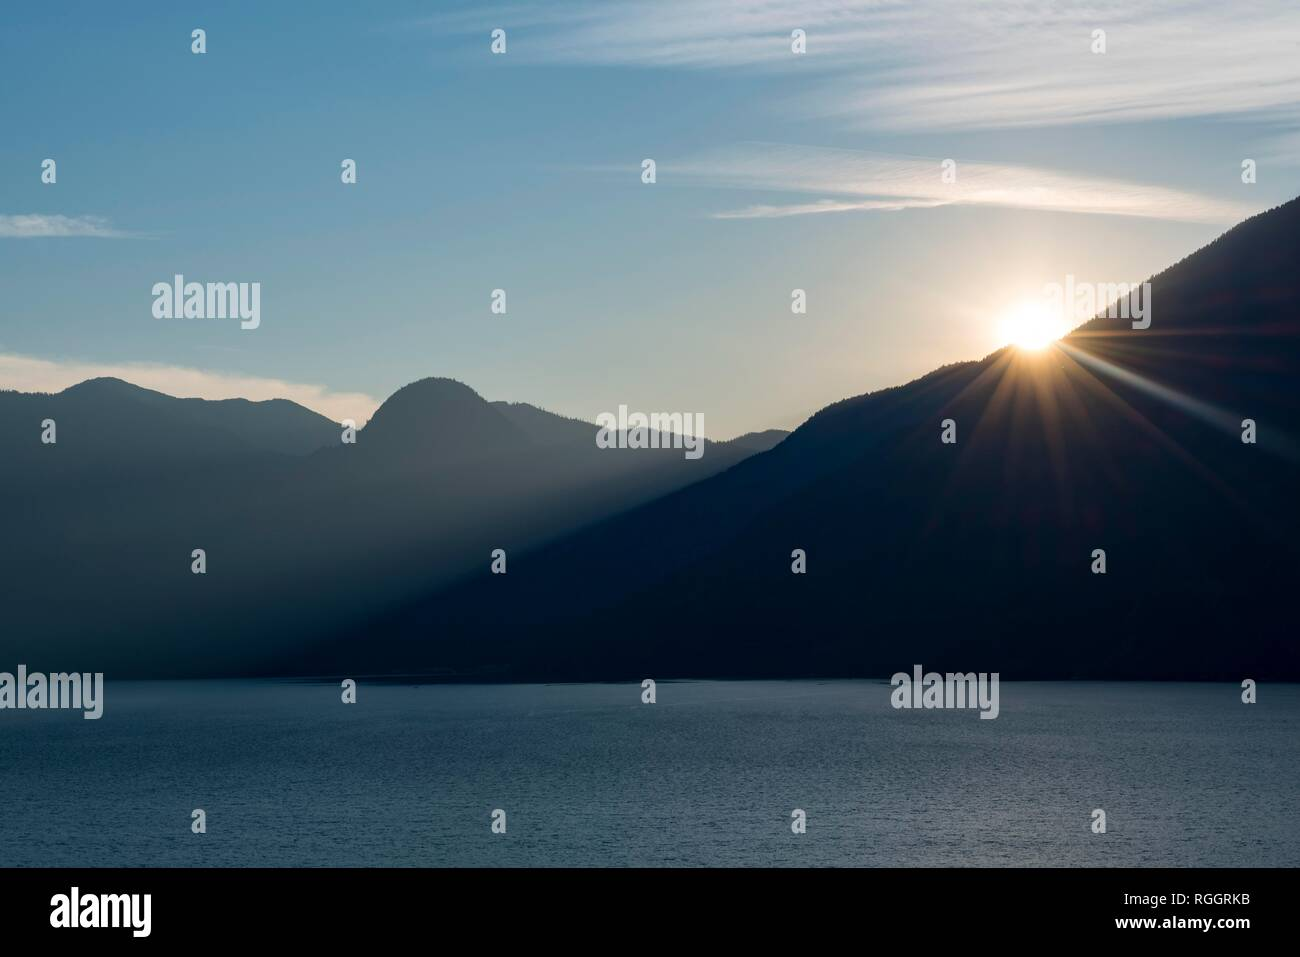 Evening sun shines over mountain silhouette, Howe Sound, Squamish, British Columbia, Canada Stock Photo